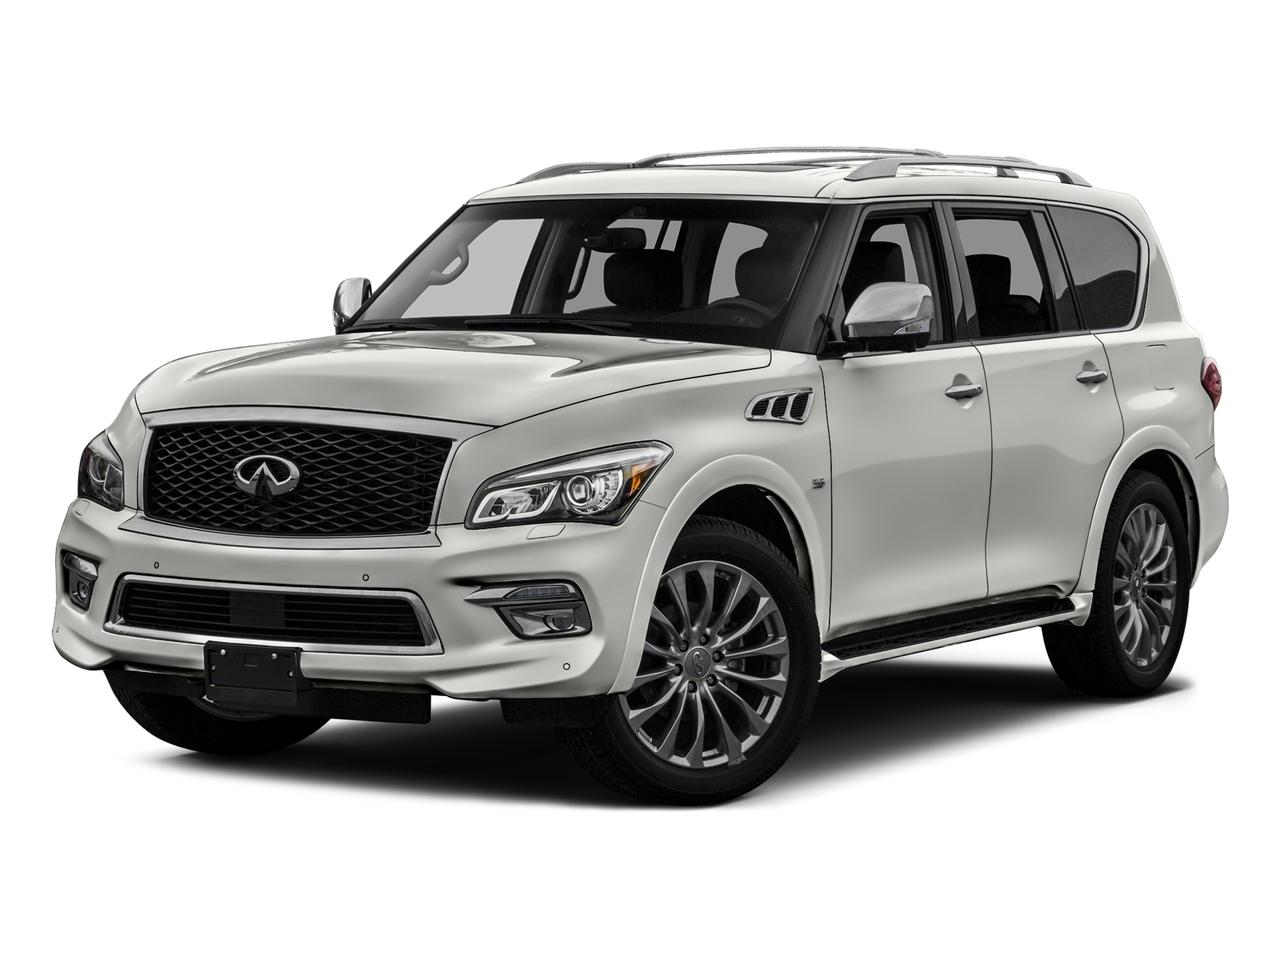 2017 INFINITI QX80 Vehicle Photo in Flemington, NJ 08822